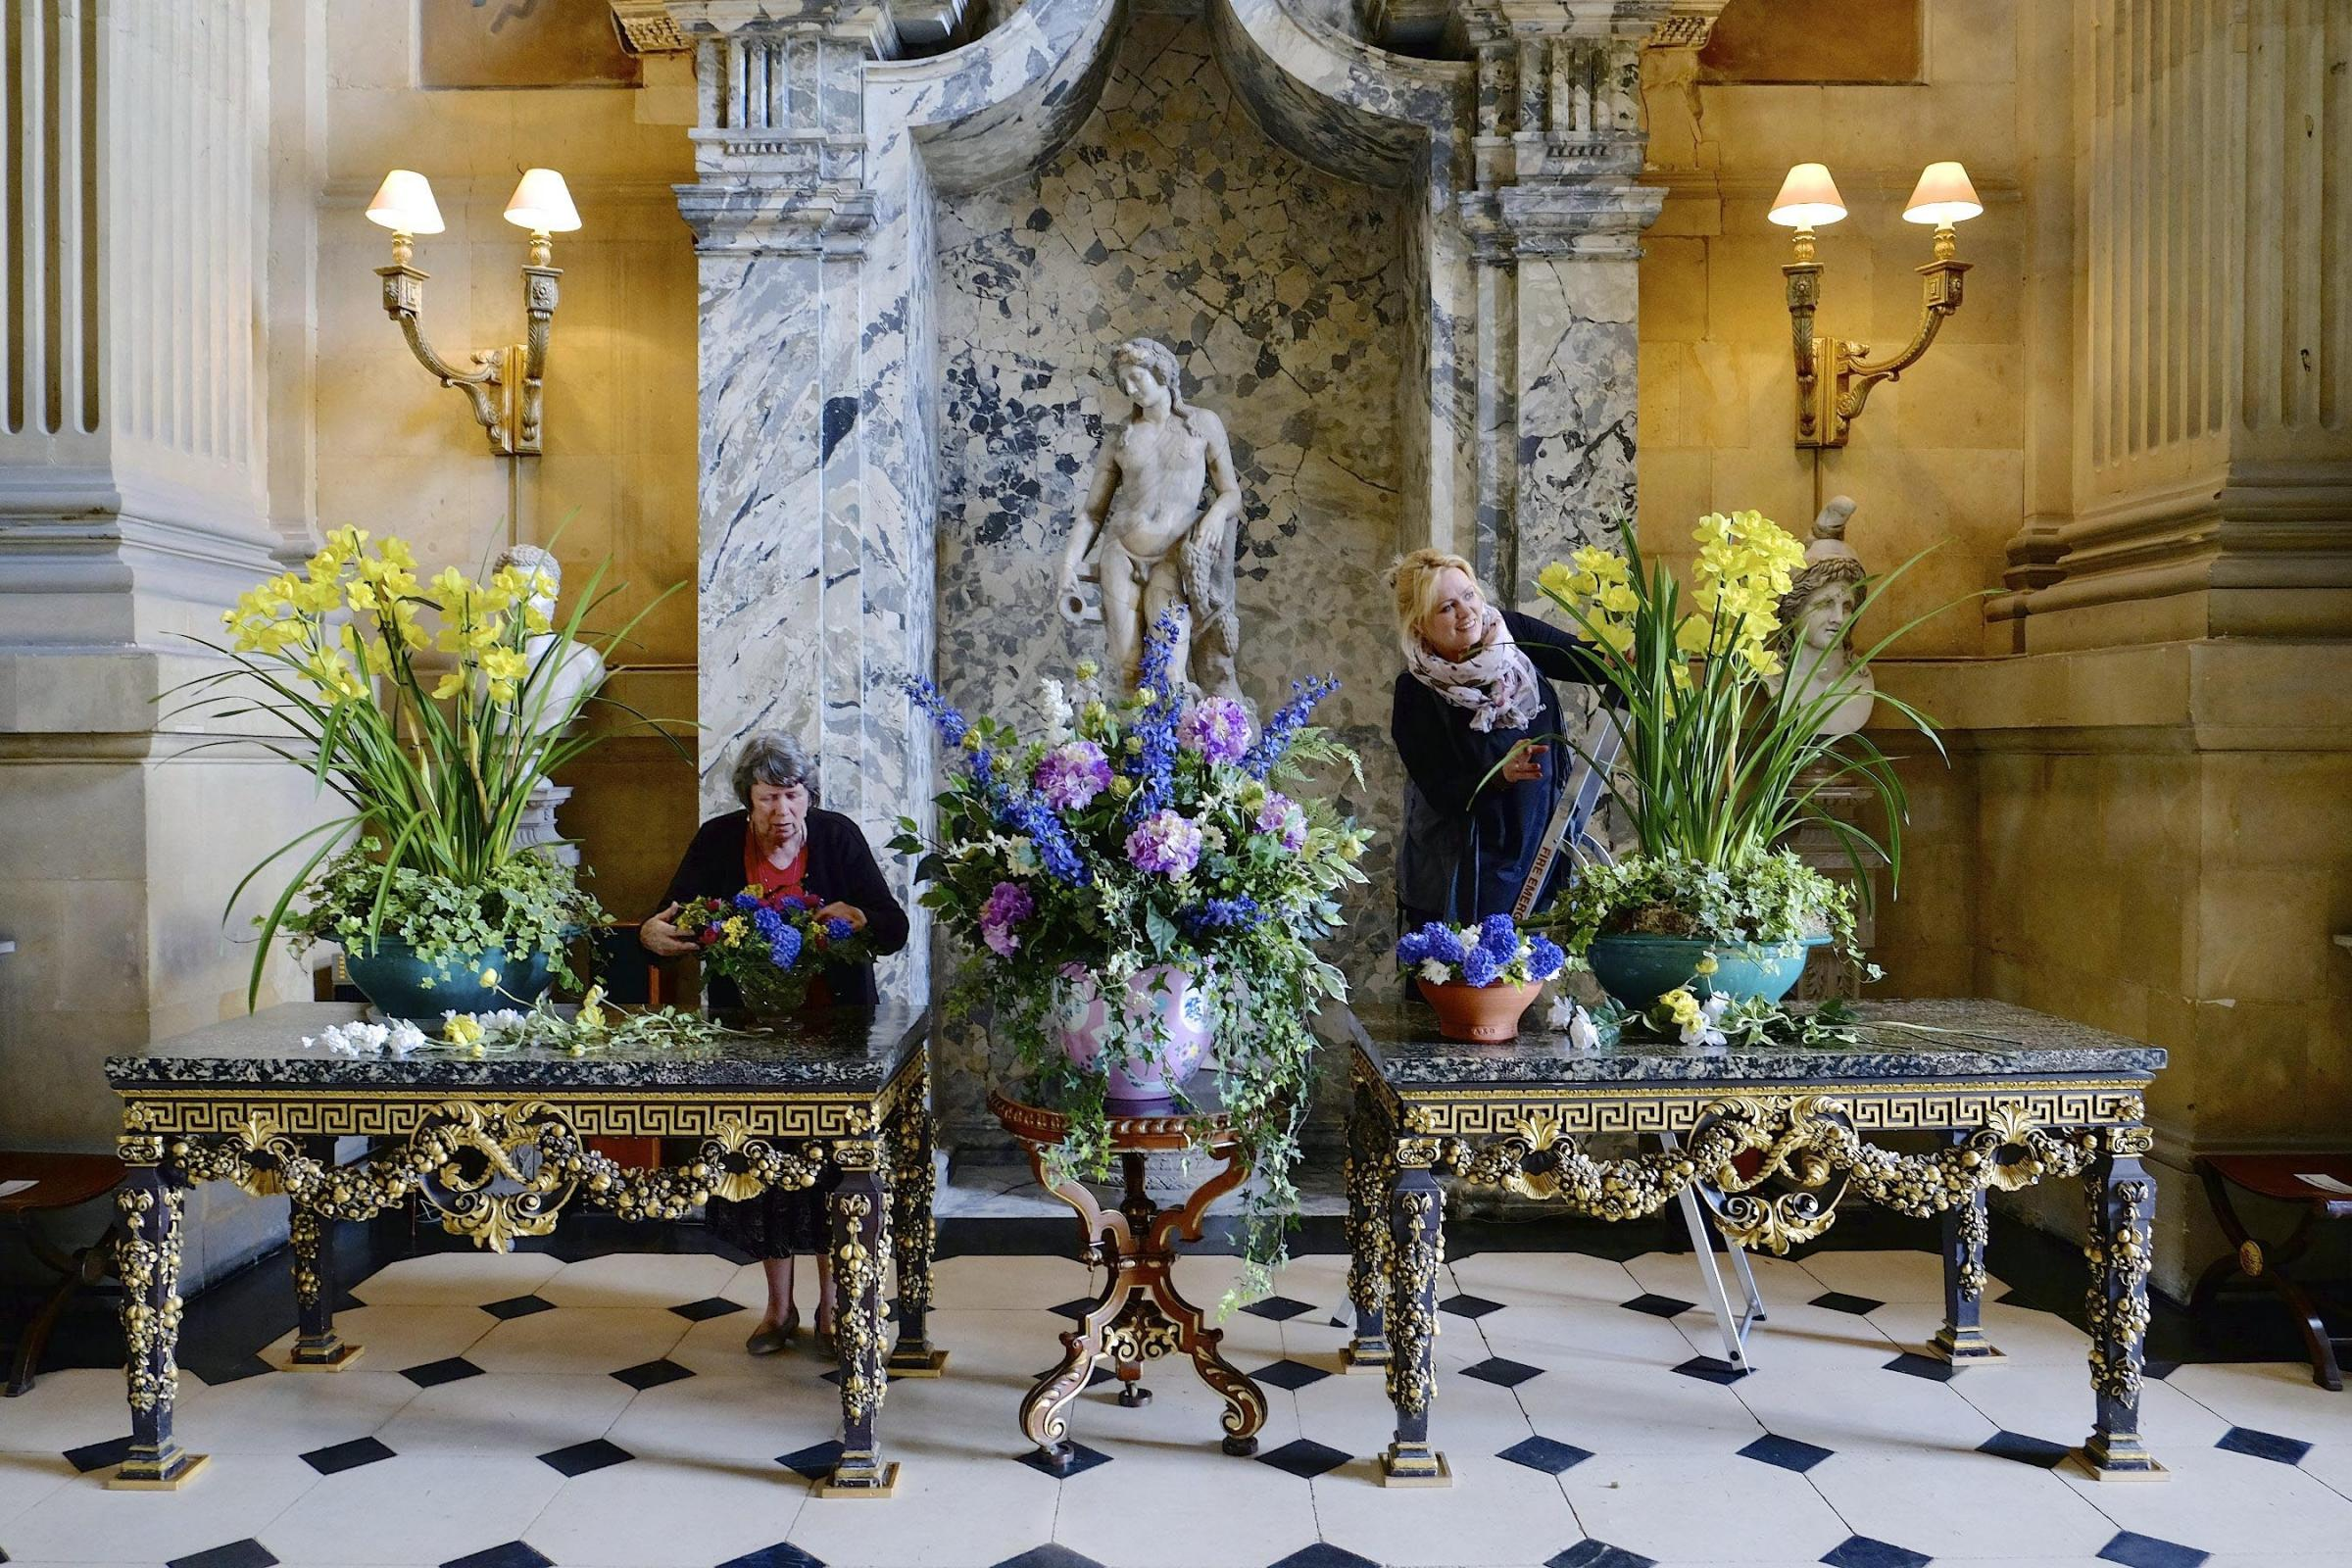 Kymm Queen, florist at Castle Howard, with her mother Carol, who was a previous florist at the house, prepare for the flower festival.  Picture: Tony Bartholomew